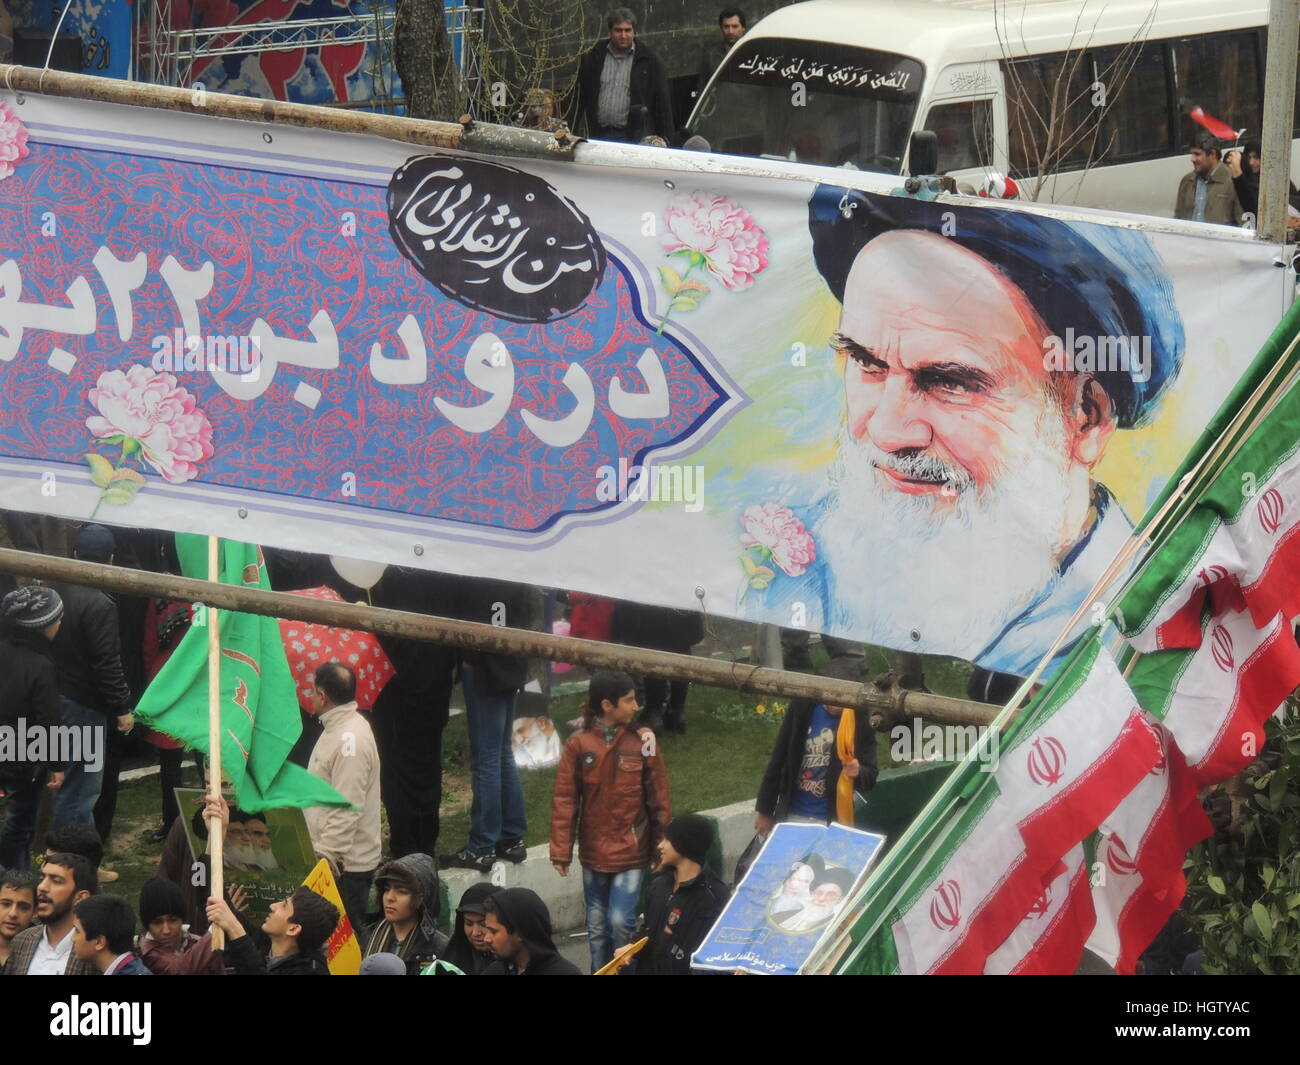 Imam Khomeini banner over Iranian people march for the Islamic Revolution anniversary rally, national day of Iran - Stock Image